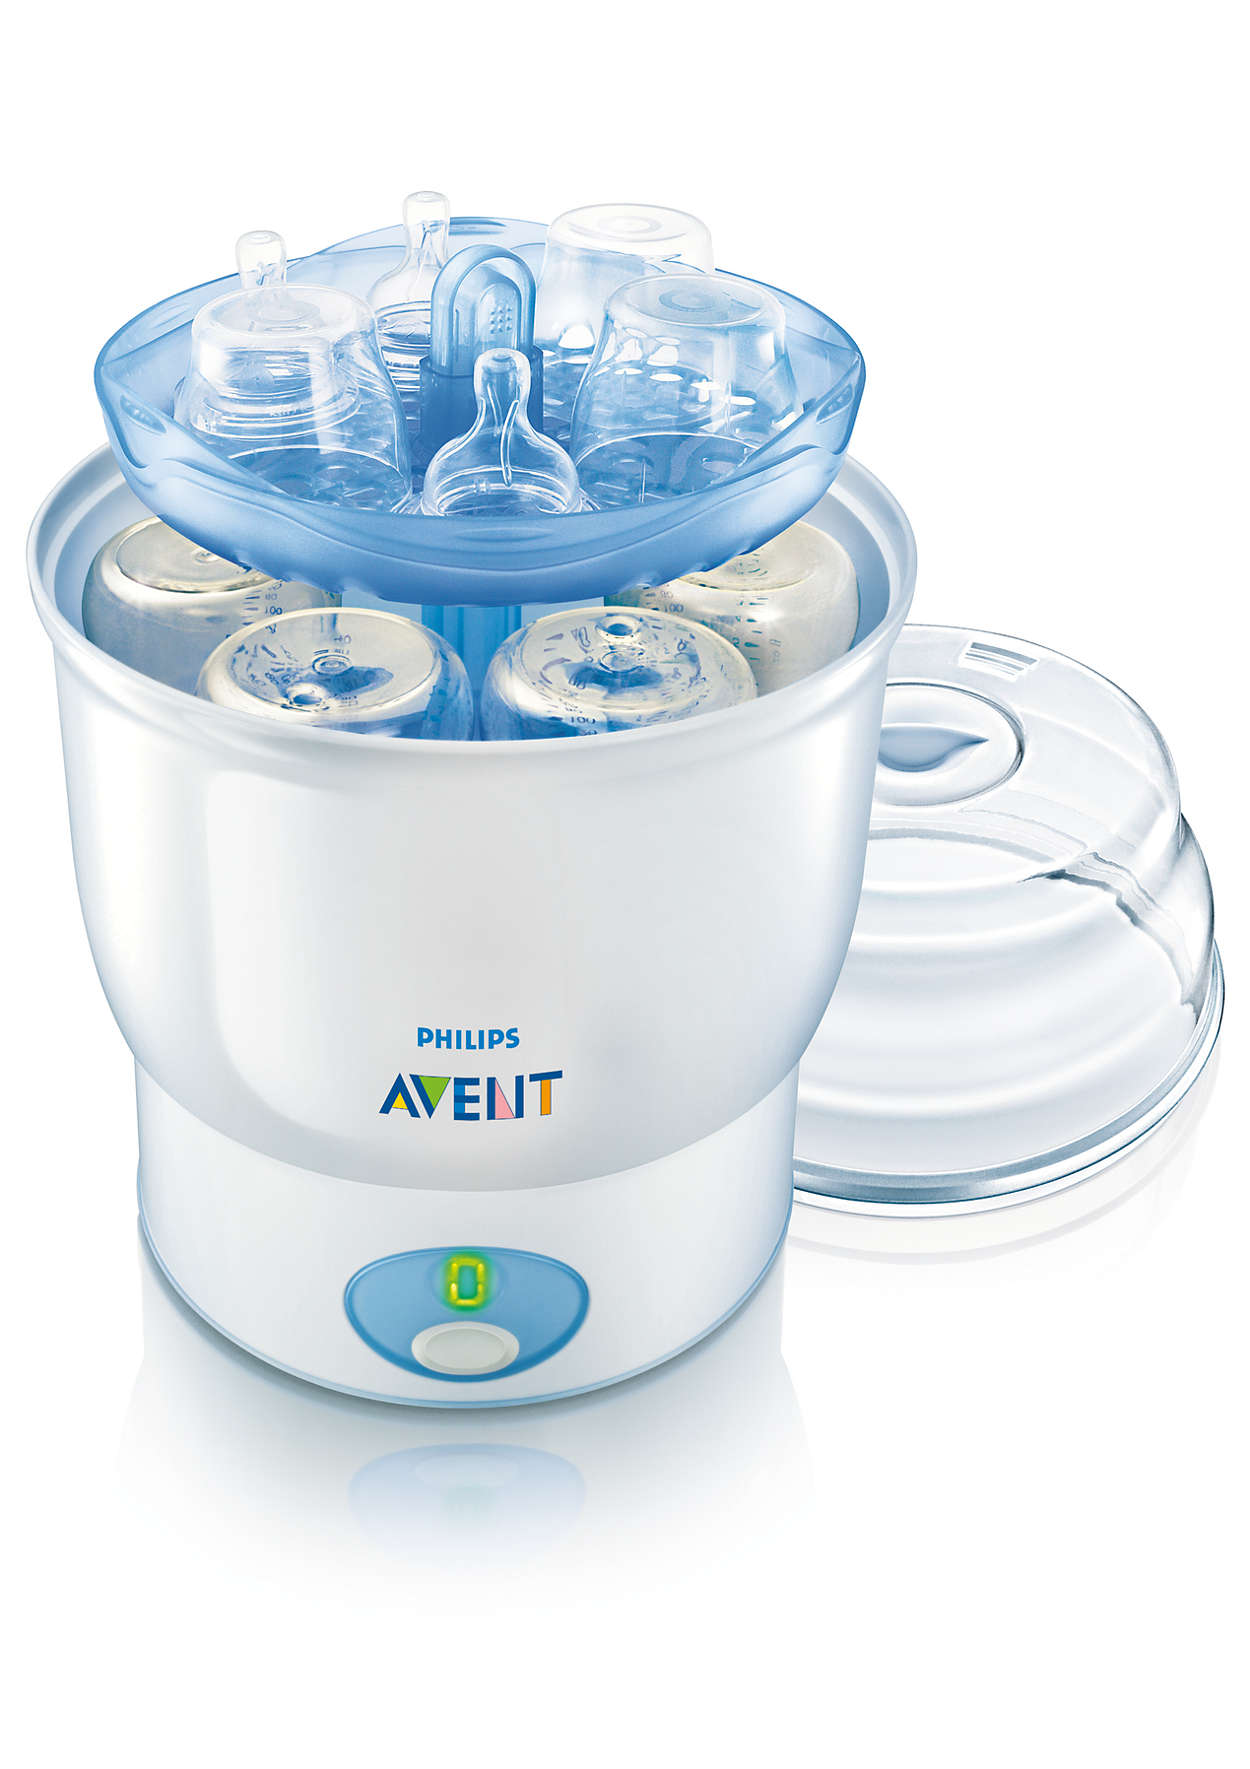 What to Look For When Buying Bottle Sterilizers?